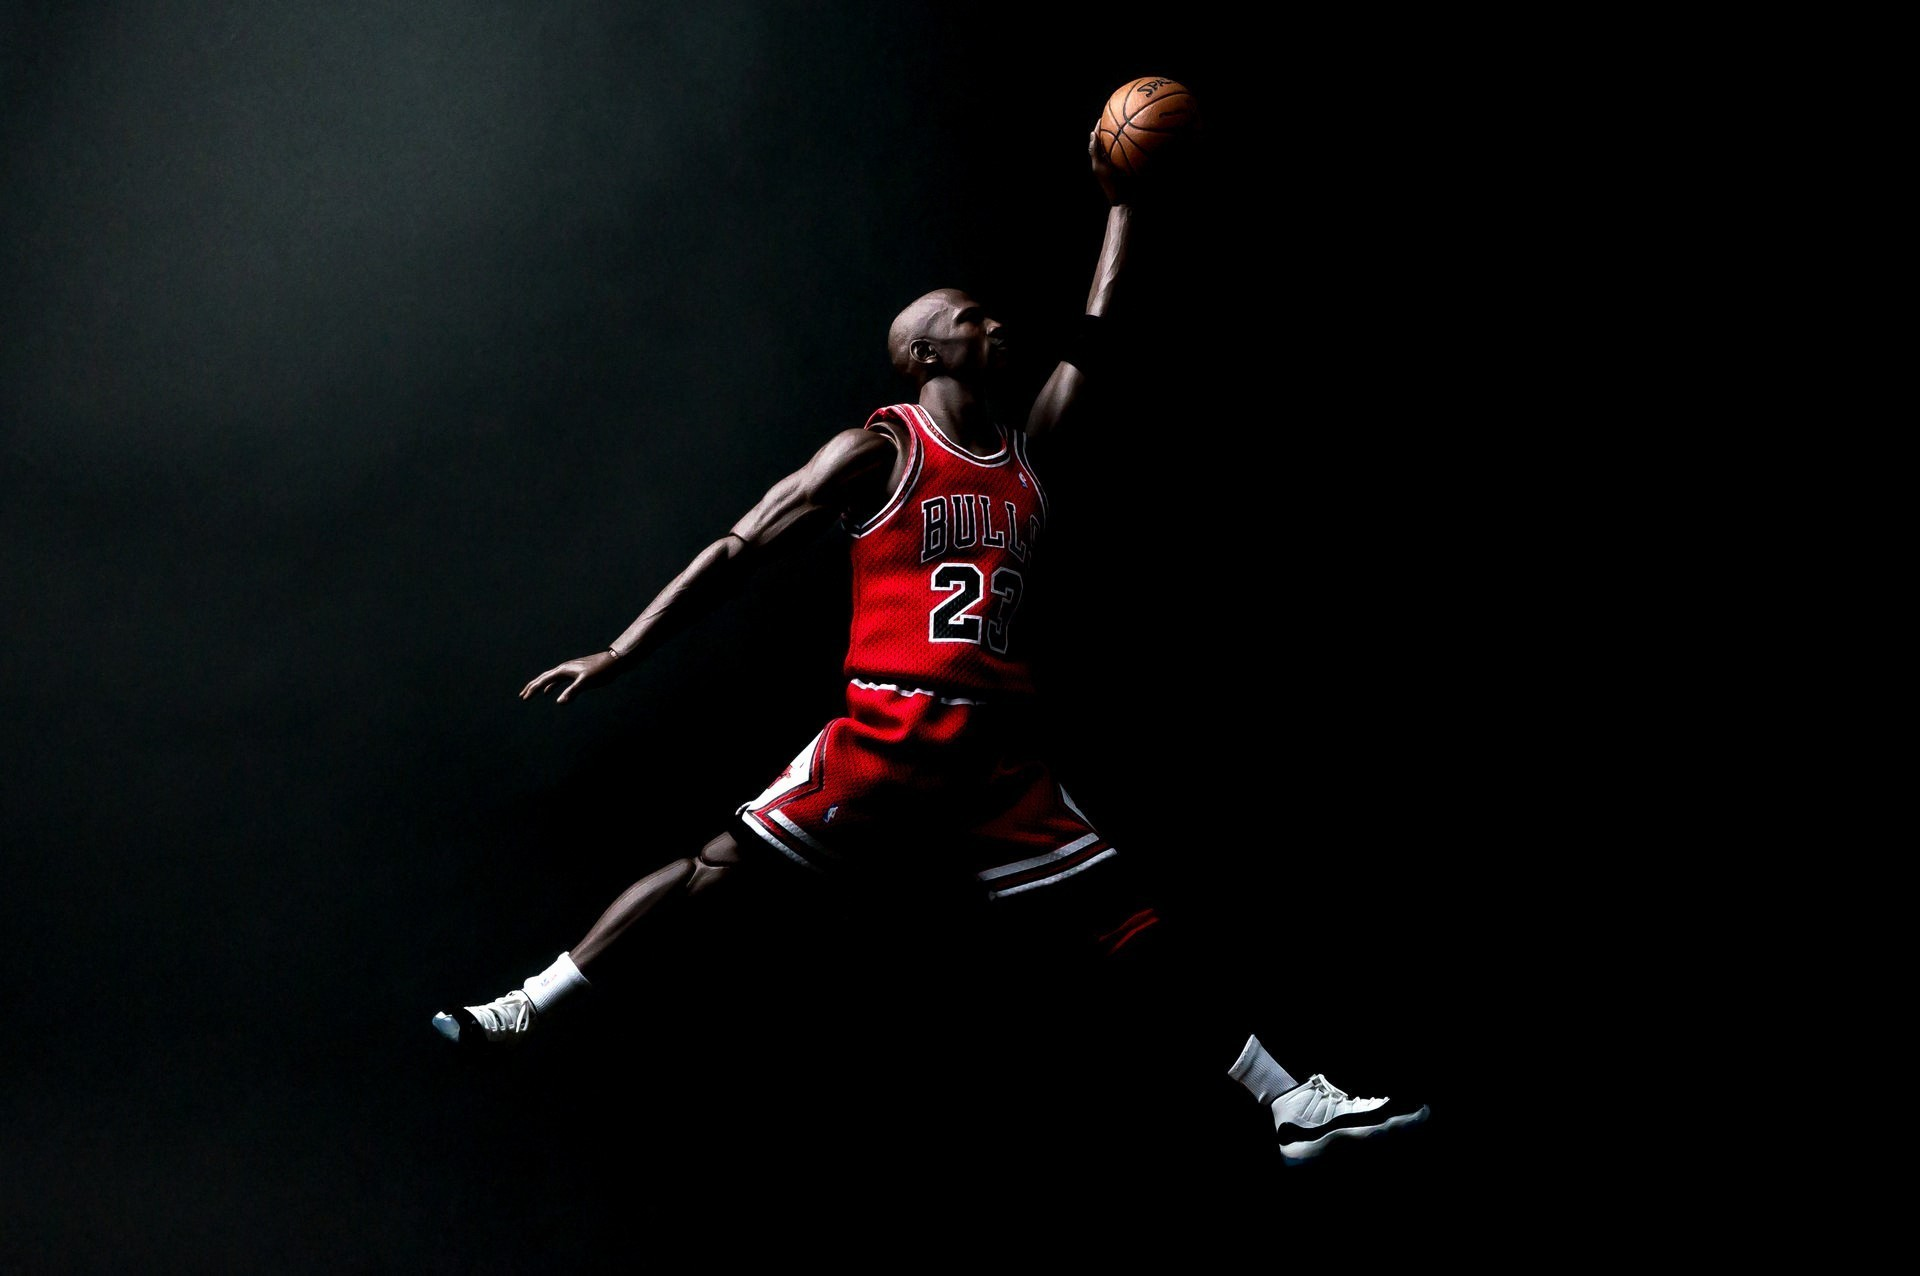 Hd Michael Jordan Wallpaper Kolpaper Awesome Free Hd Wallpapers